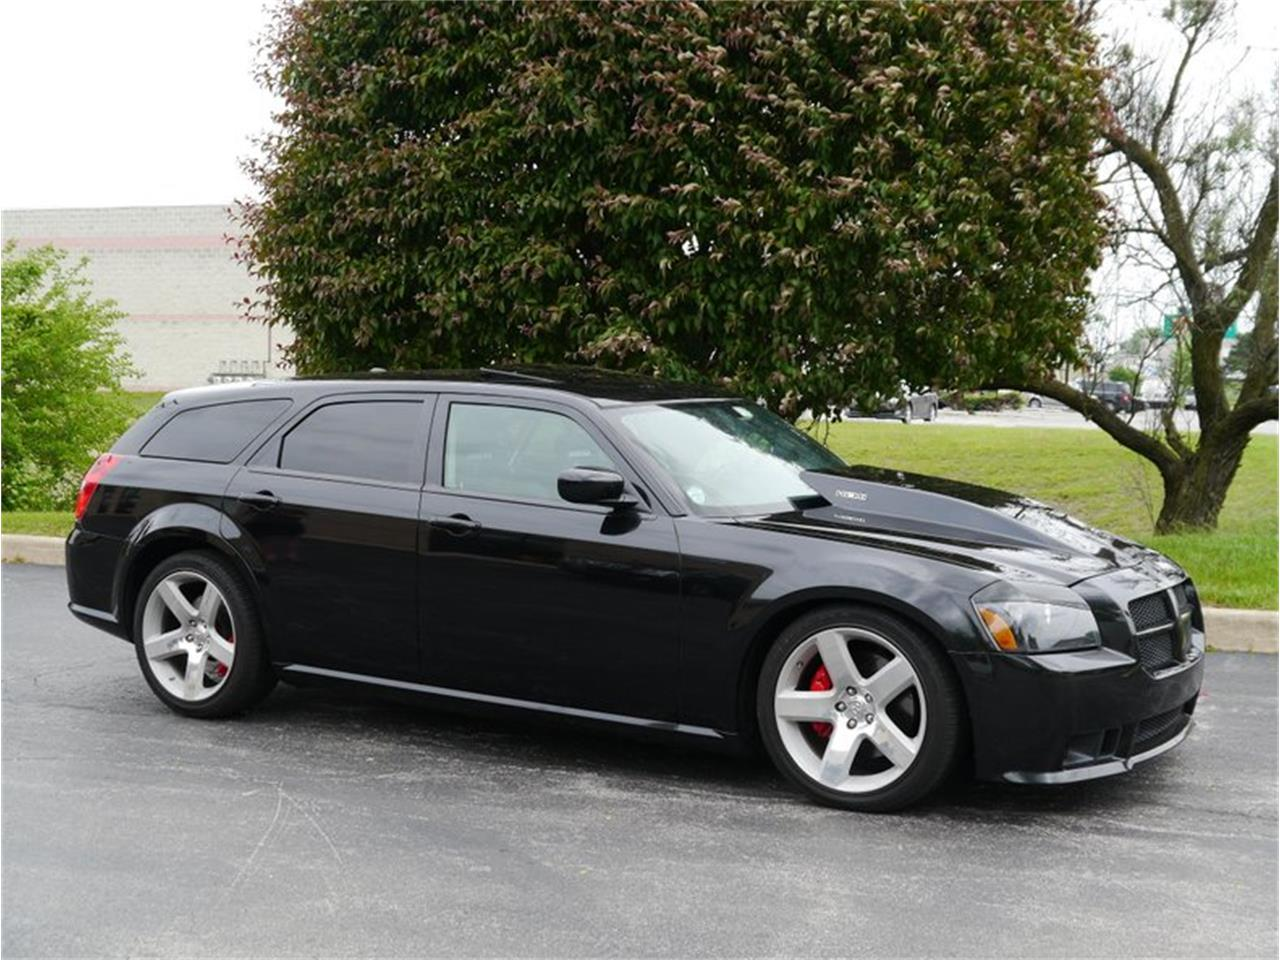 Dodge Magnum For Sale Near Me >> 2007 Dodge Magnum For Sale Classiccars Com Cc 1187968